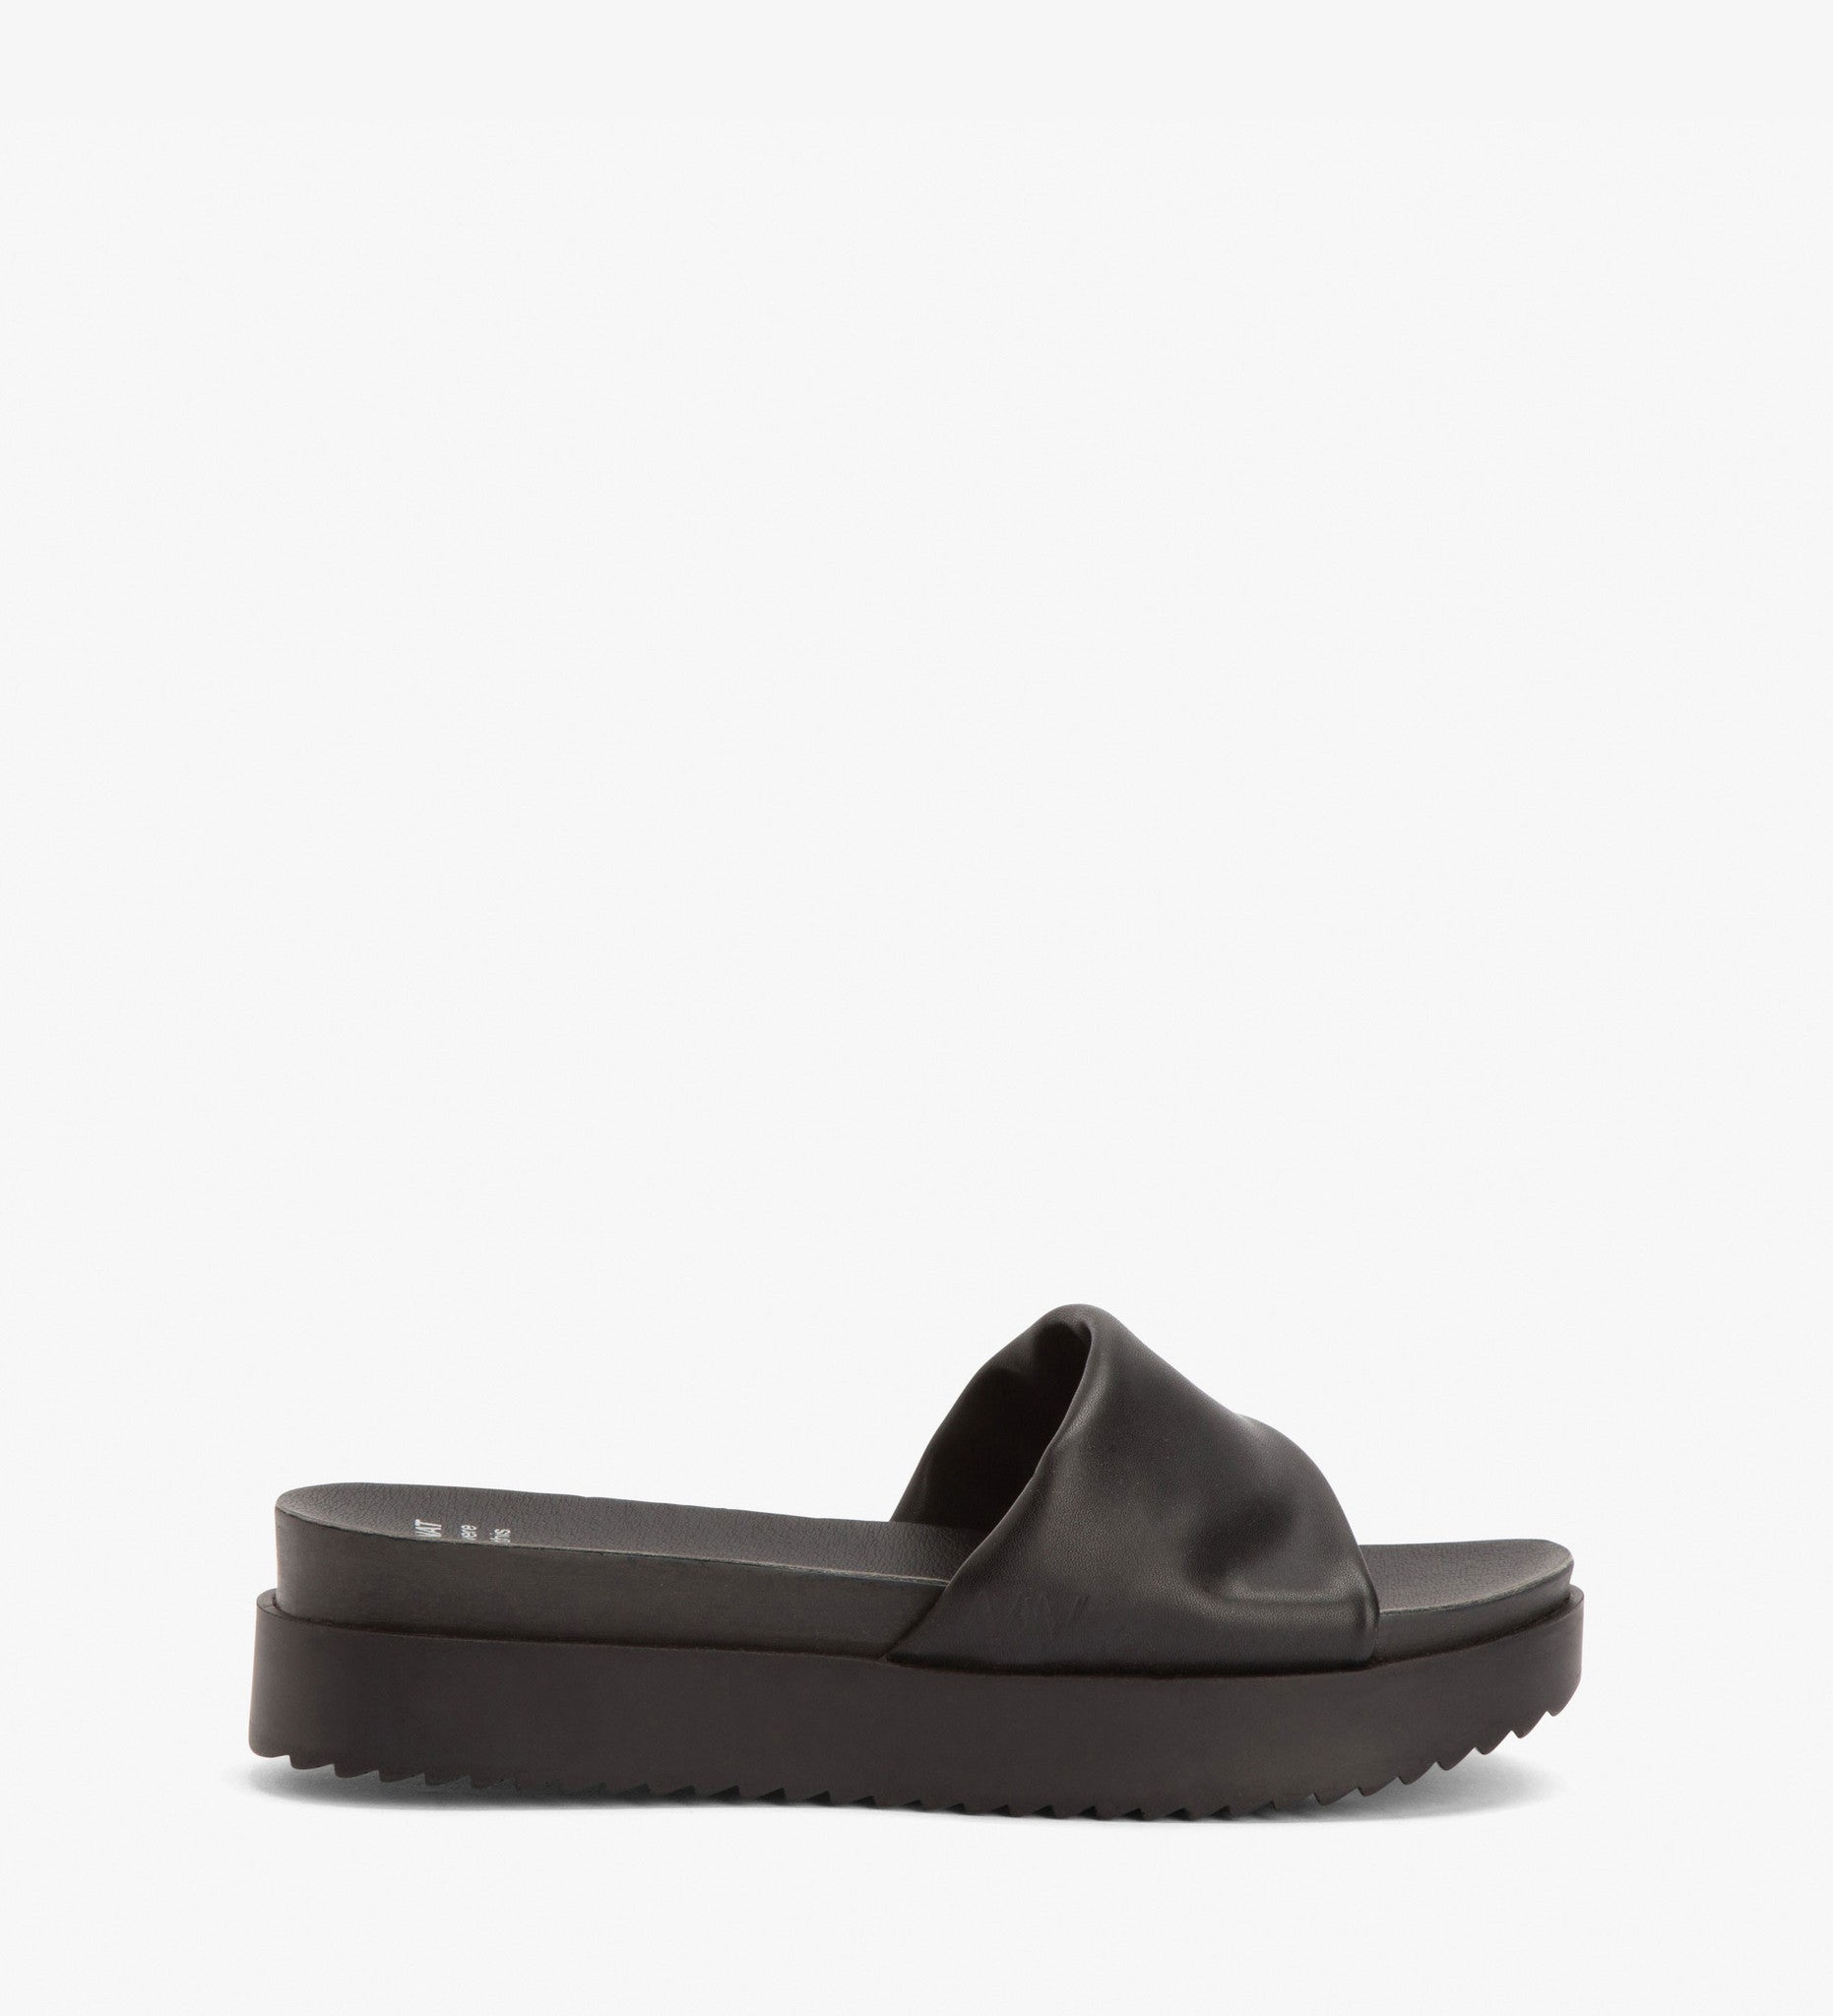 MATT & NAT Drapeau Sandals